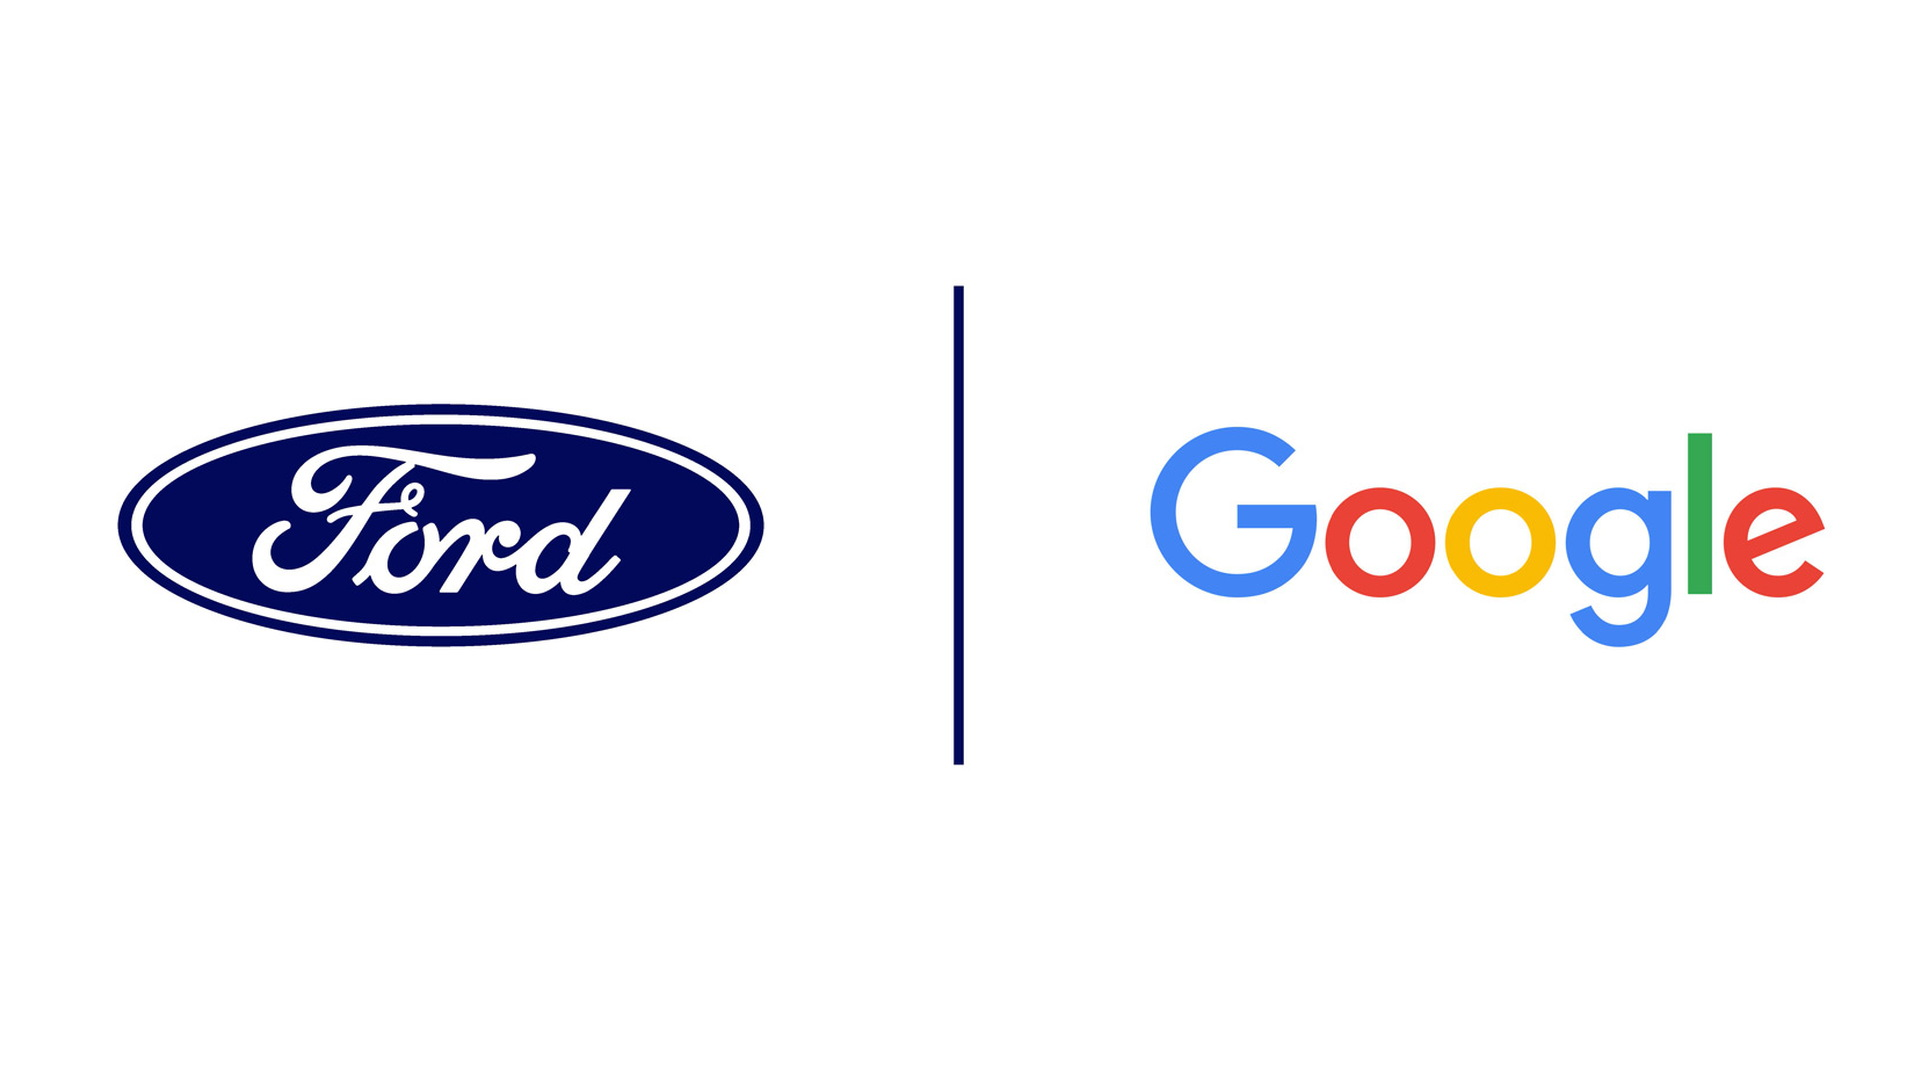 Ford and Google logos